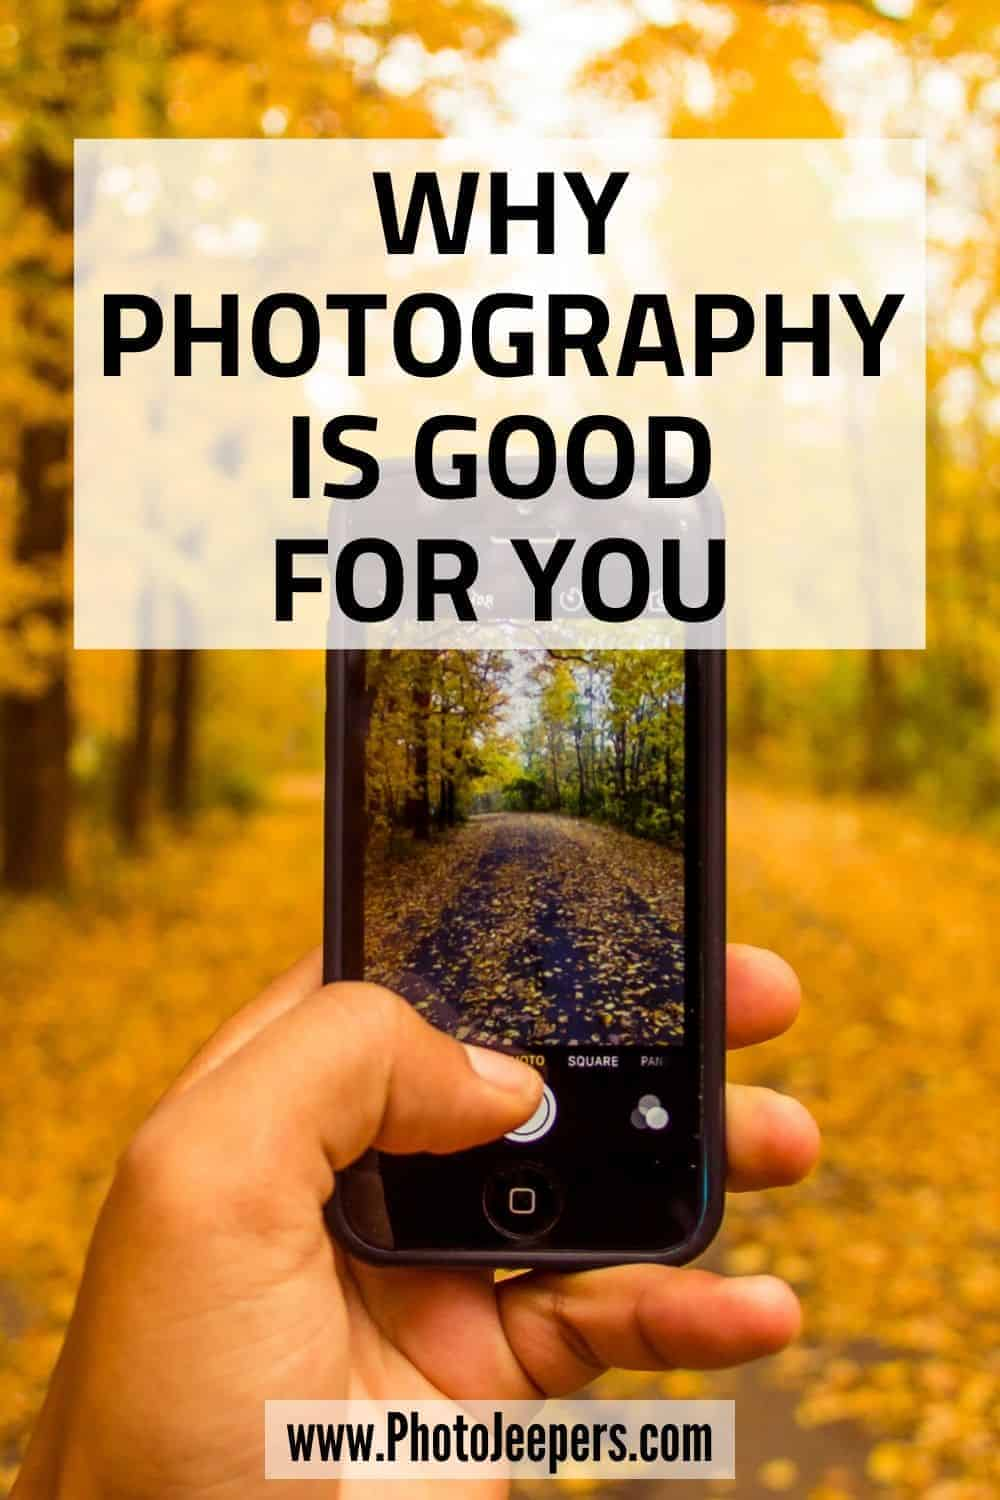 Learn how photography is good for you. It helps with stress, anxiety and grief! Read stories of healing and inspiration. #photography #mentalhealth #photographytips #photojeepers